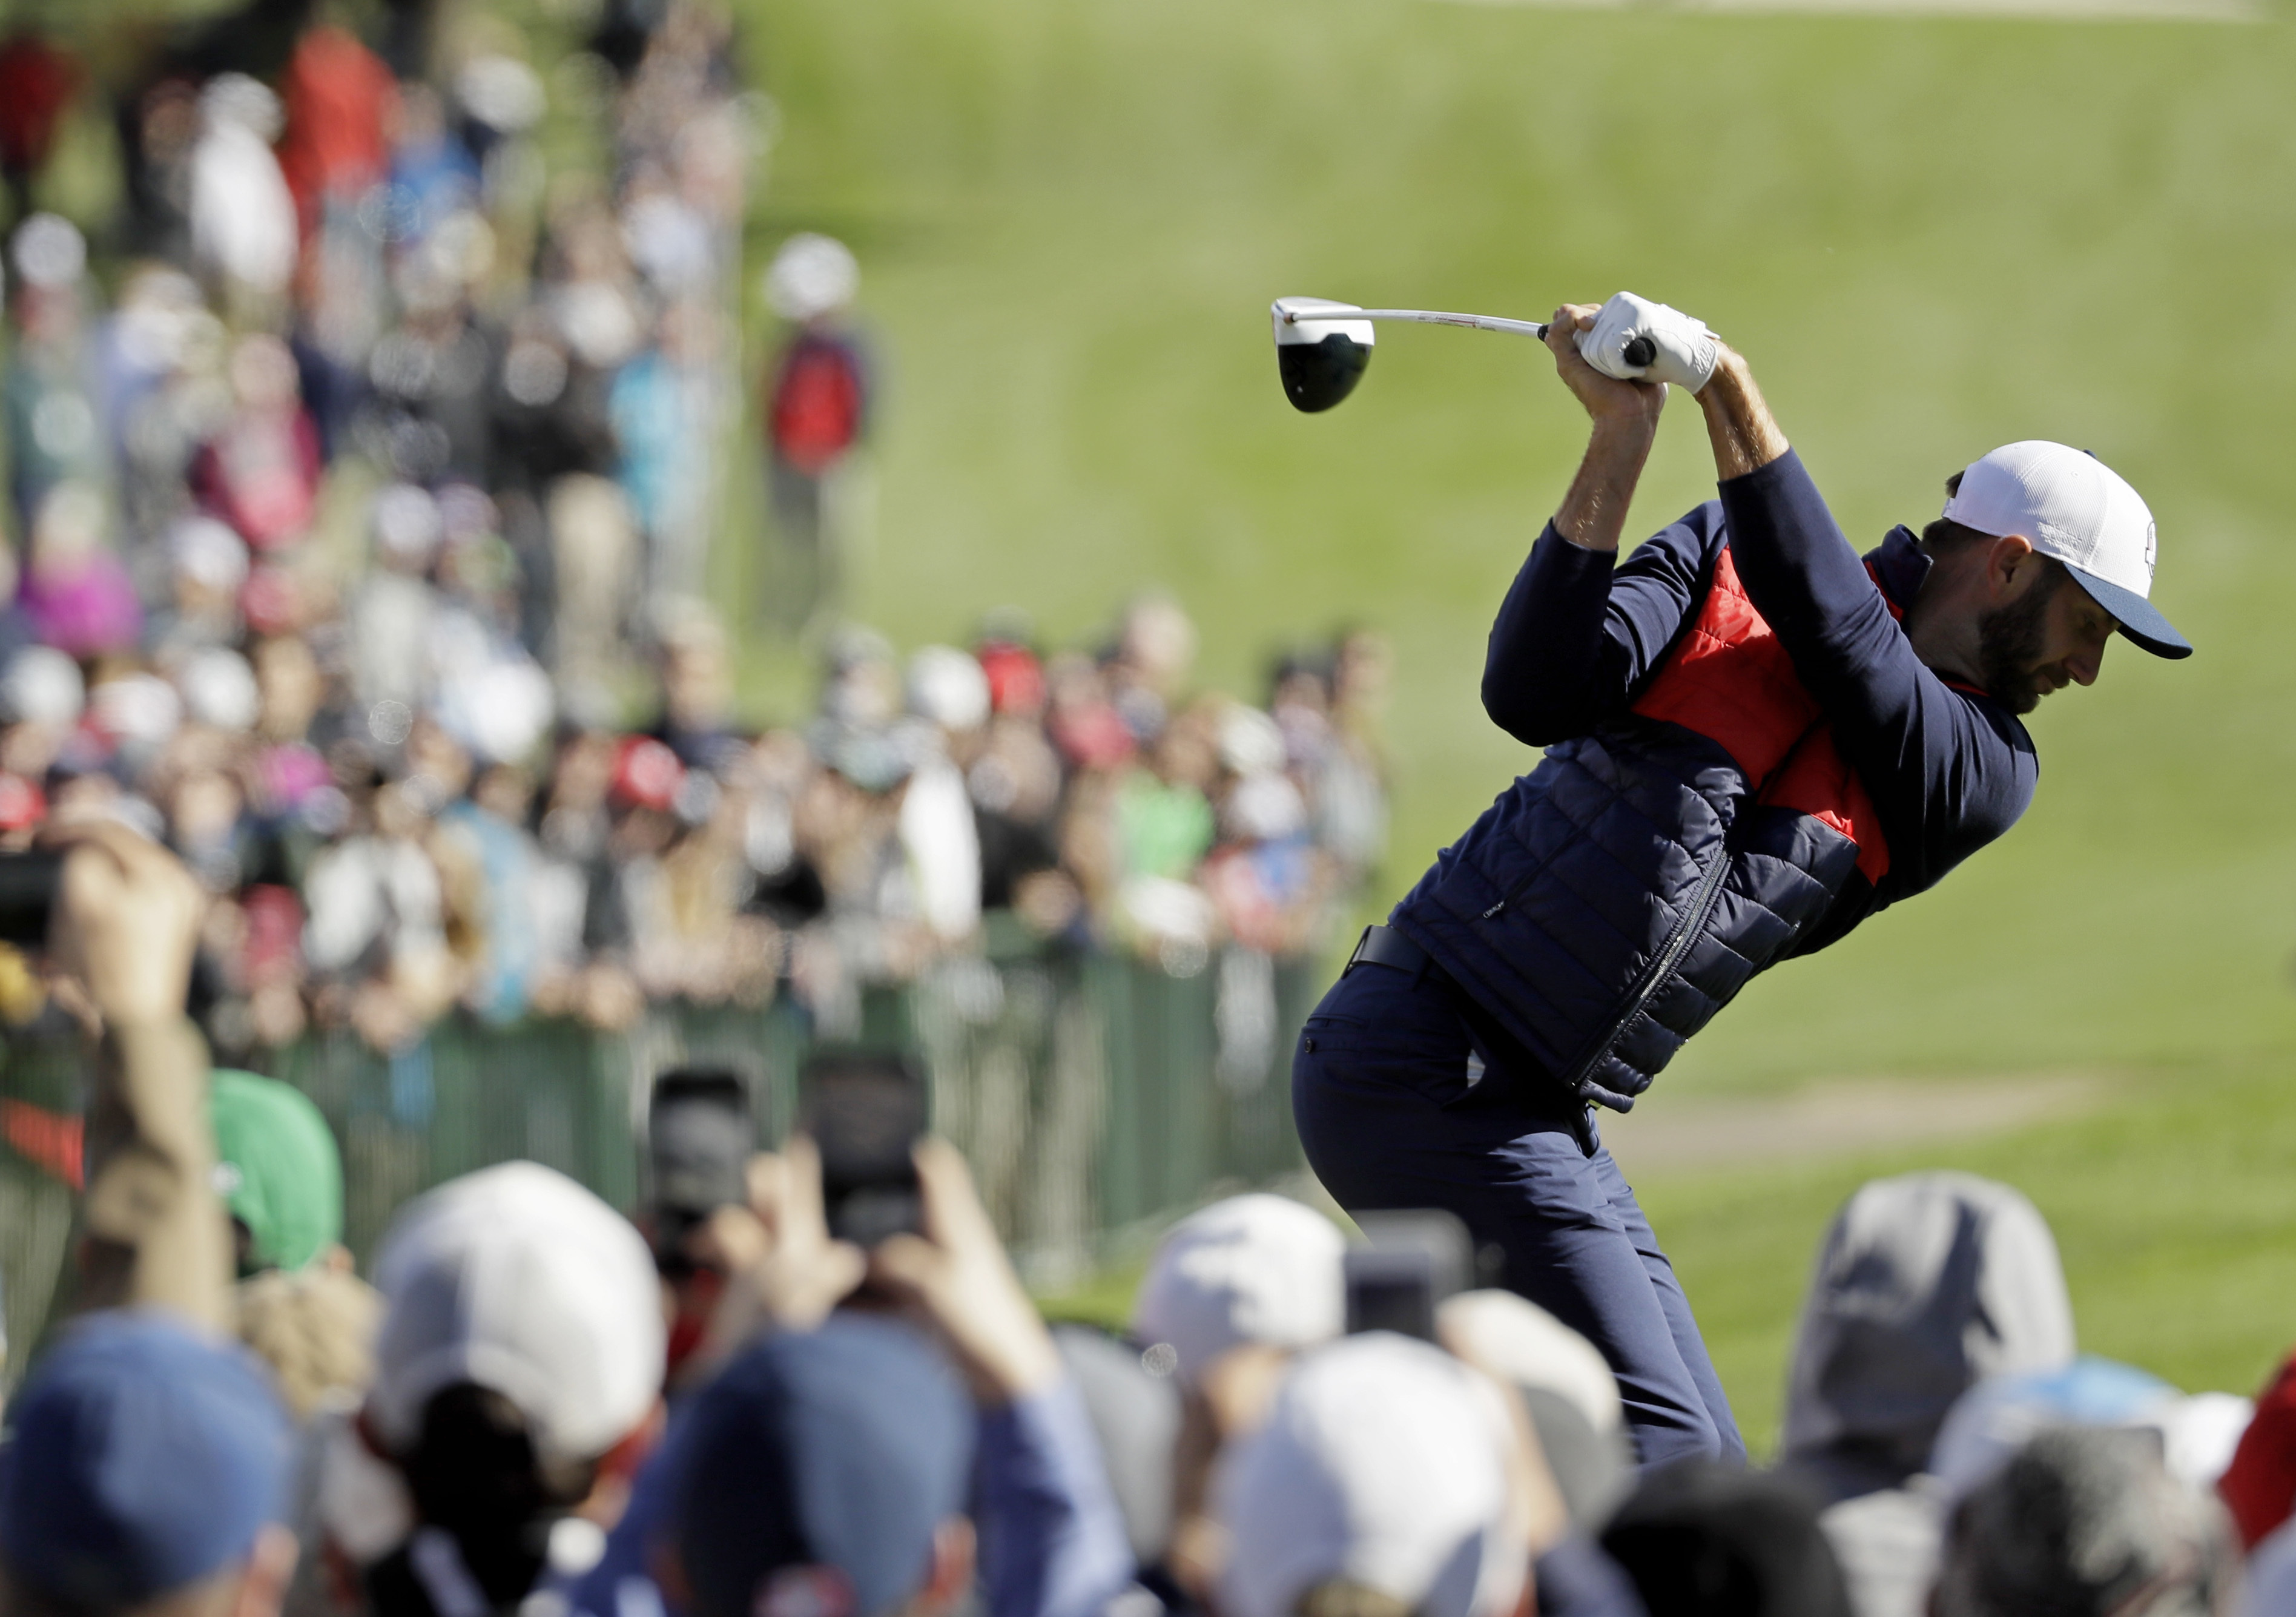 United States' Dustin Johnson hits a drive on the second hole during a practice round for the Ryder Cup golf tournament Tuesday, Sept. 27, 2016, at Hazeltine National Golf Club in Chaska, Minn. (AP Photo/David J. Phillip)